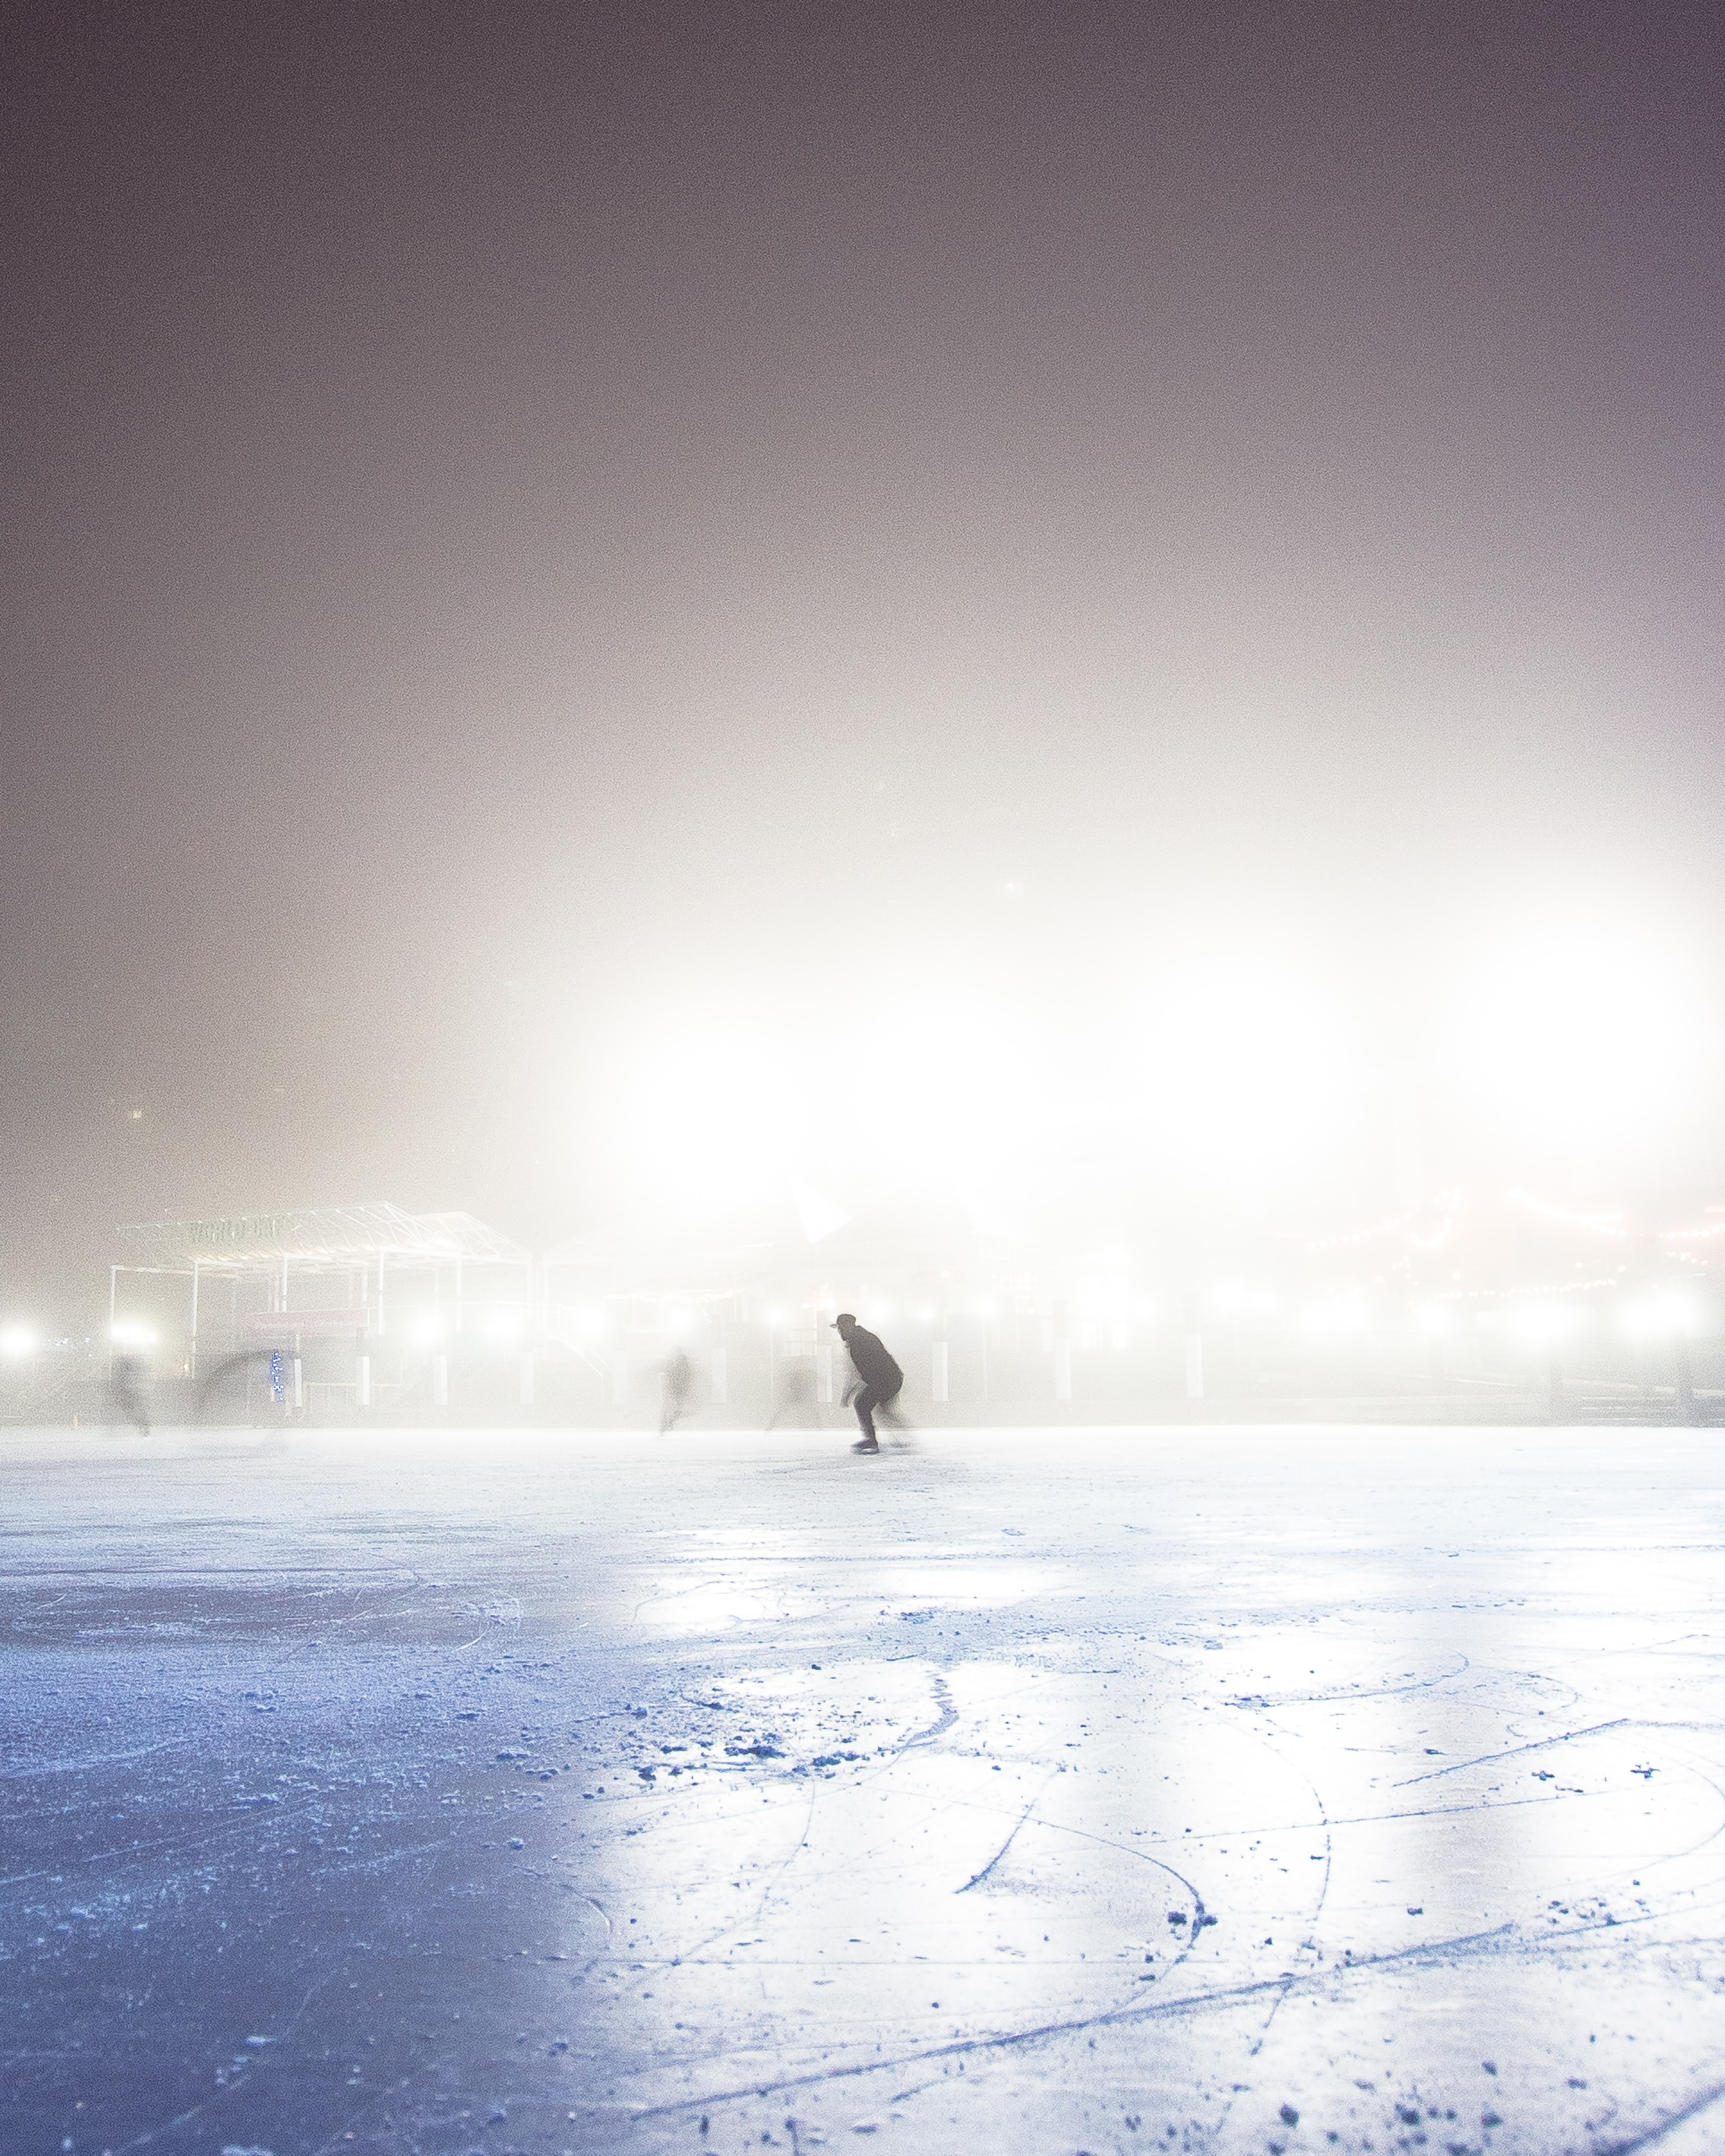 Silhouette of people skating on an ice rink on a misty winter night